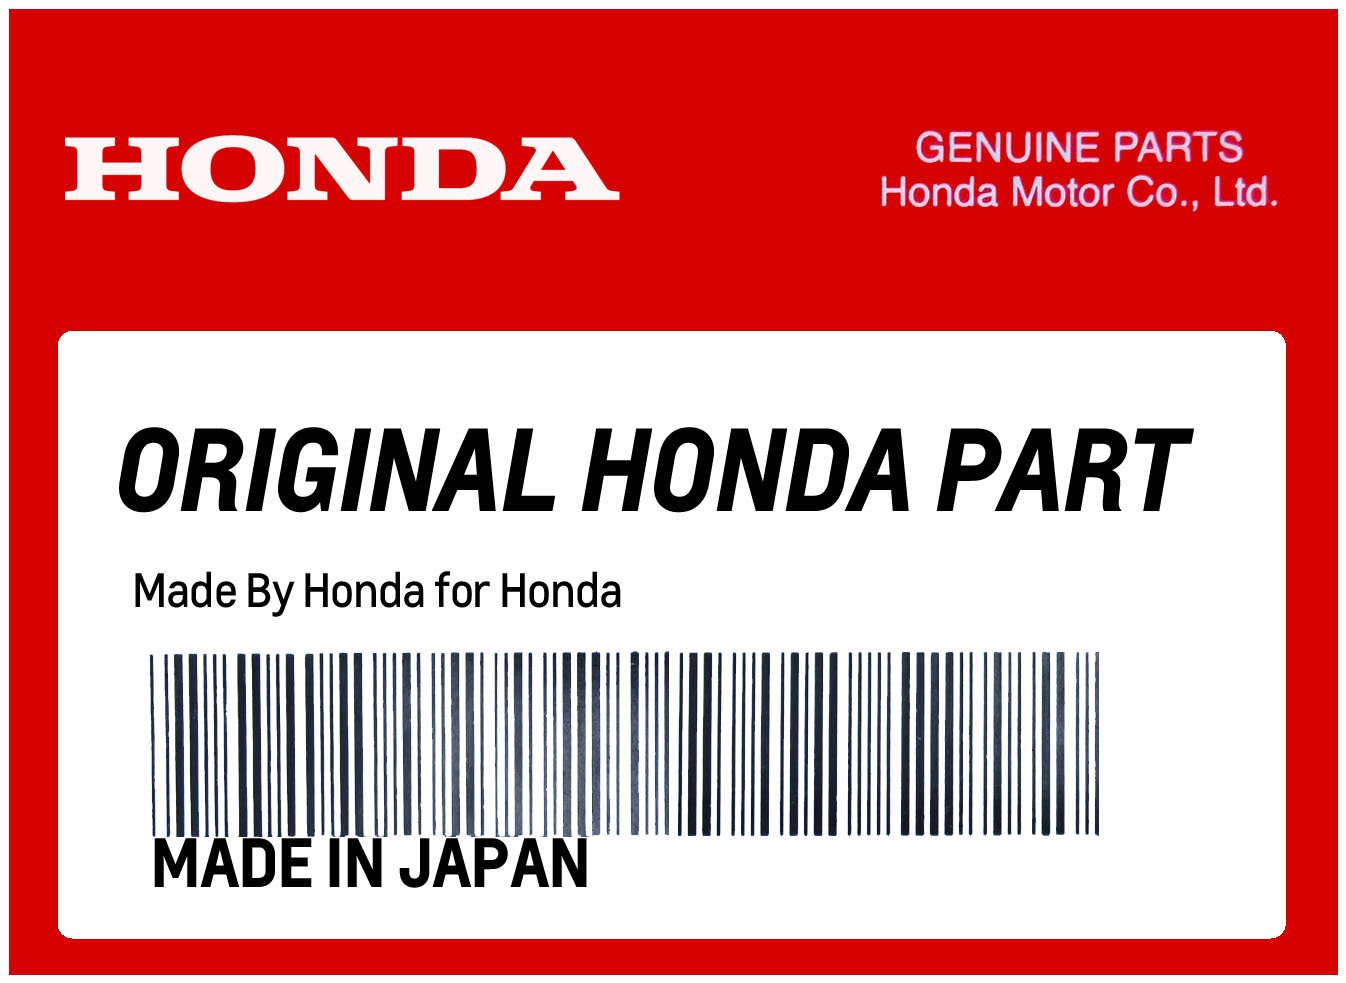 RESET HONDA 37202-MEA-601 SWITCH ASSY.